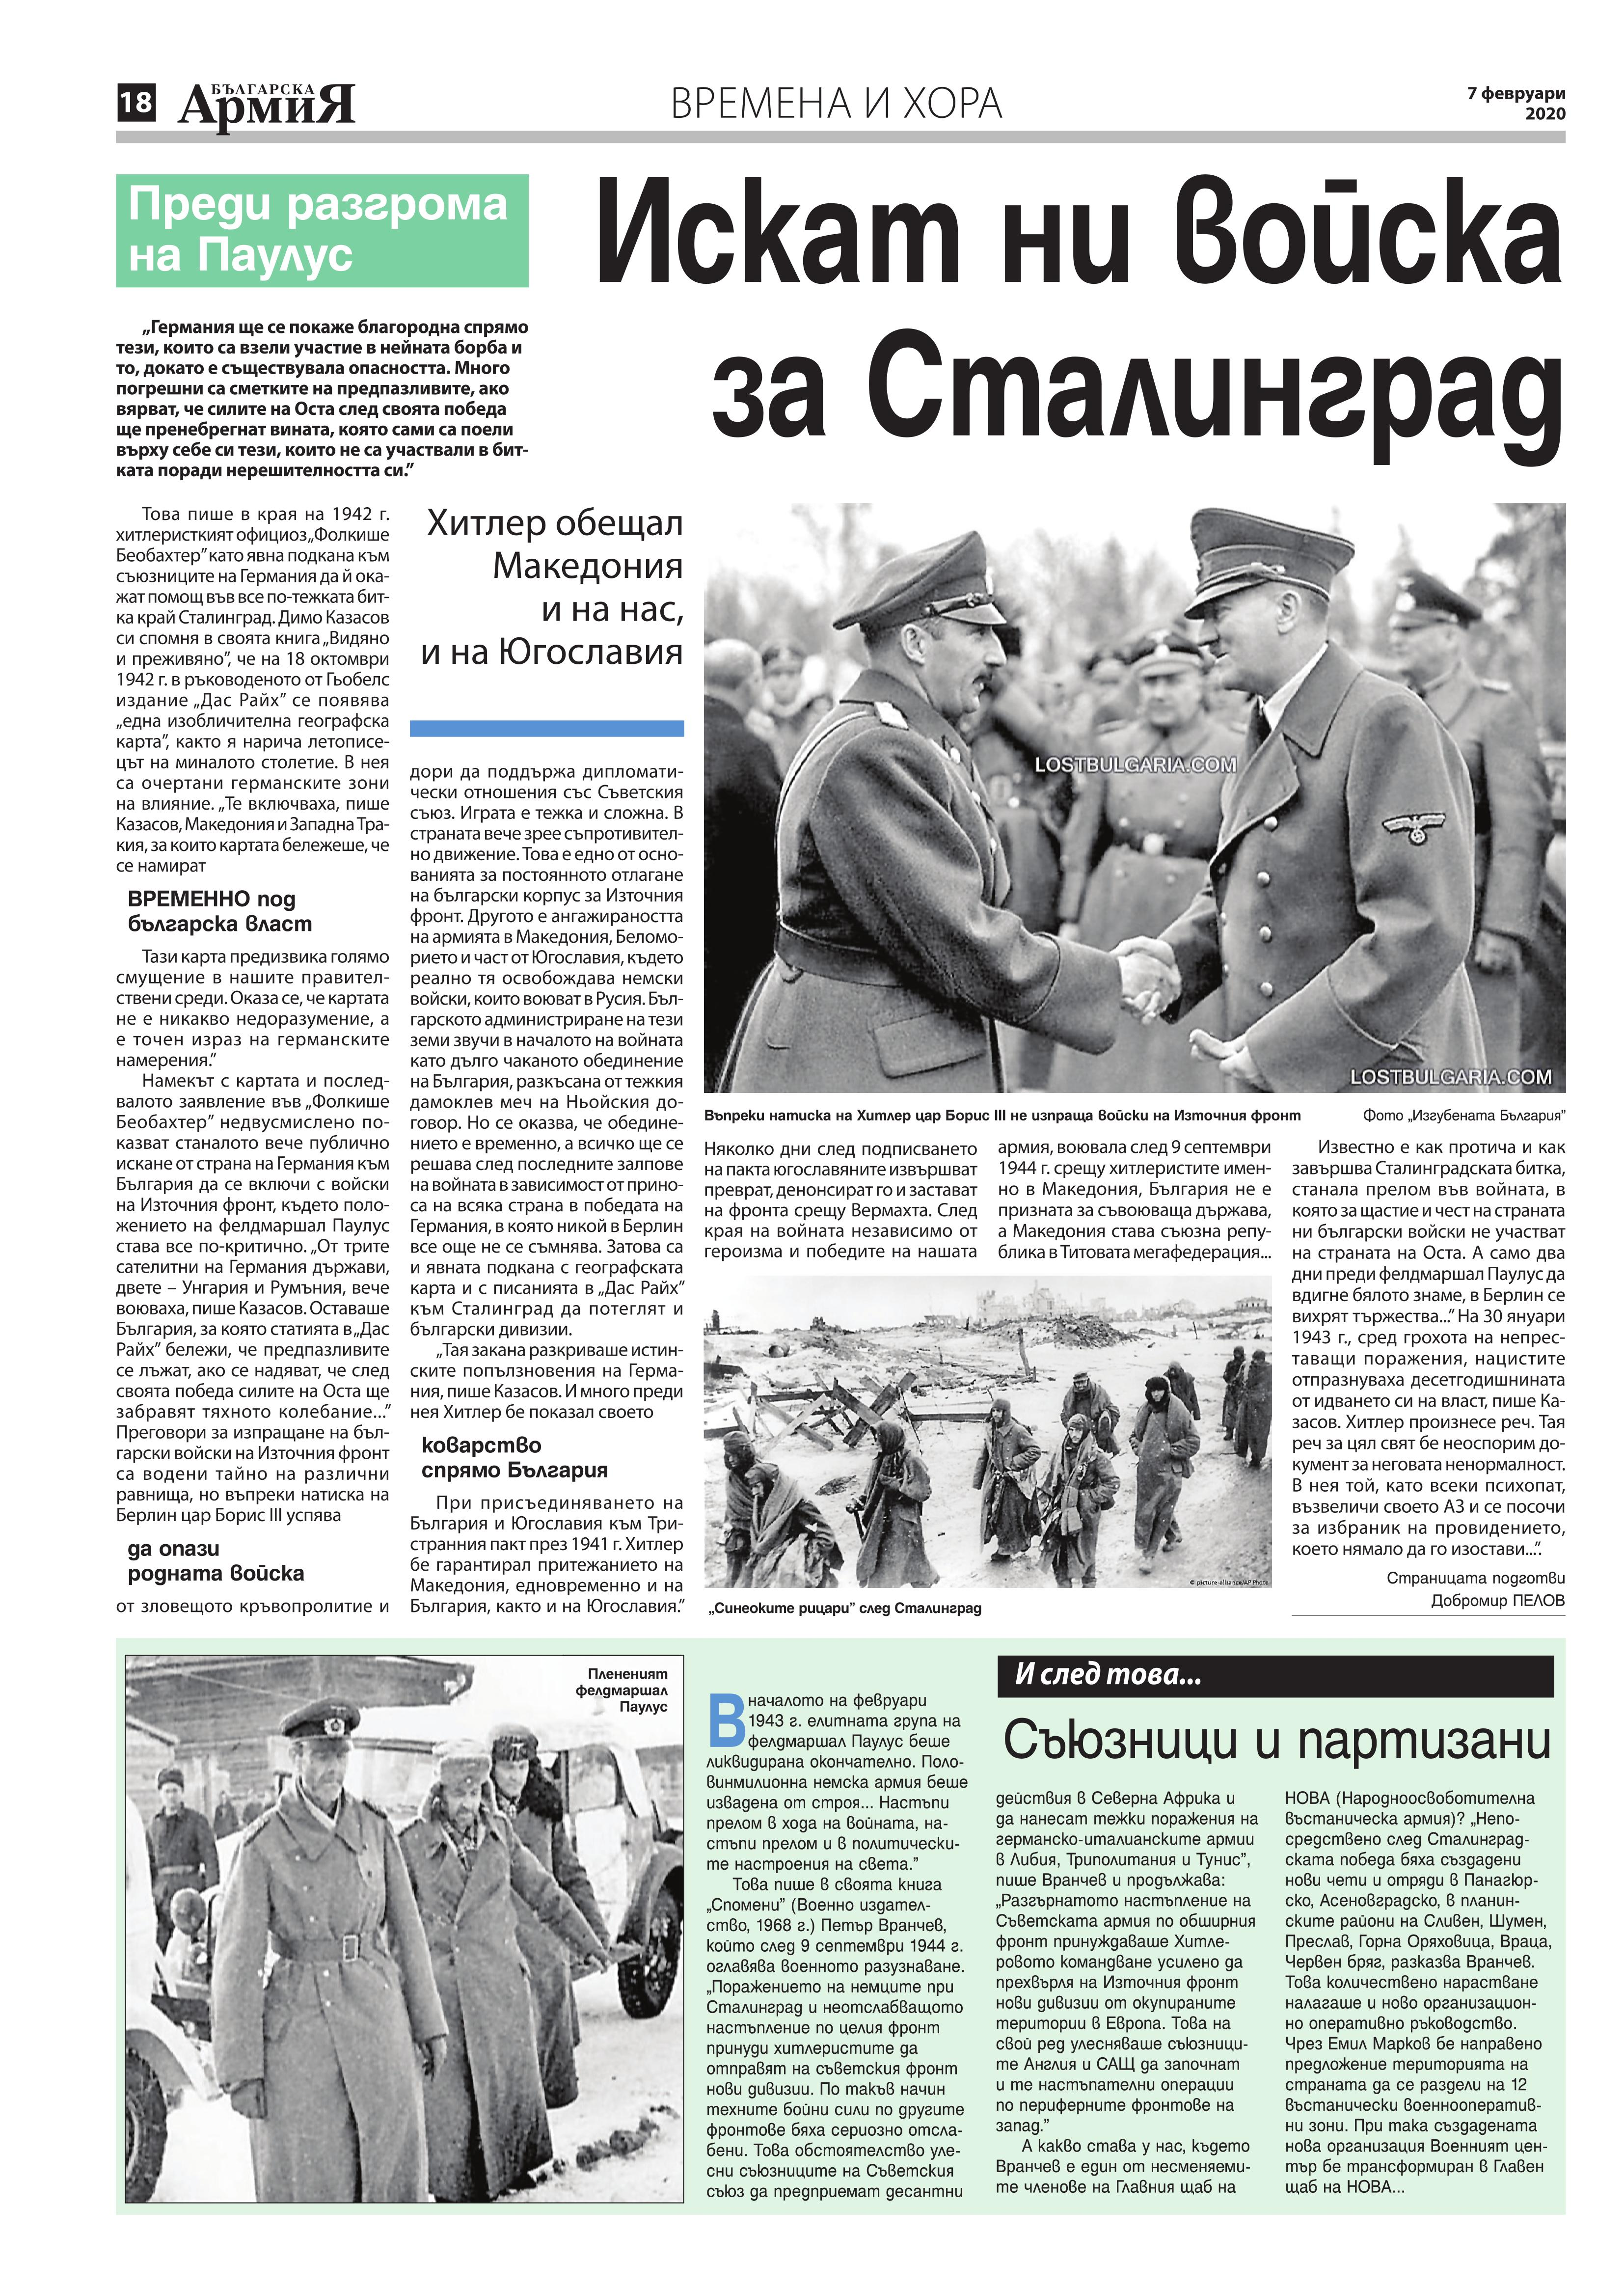 https://www.armymedia.bg/wp-content/uploads/2015/06/18.page1_-126.jpg